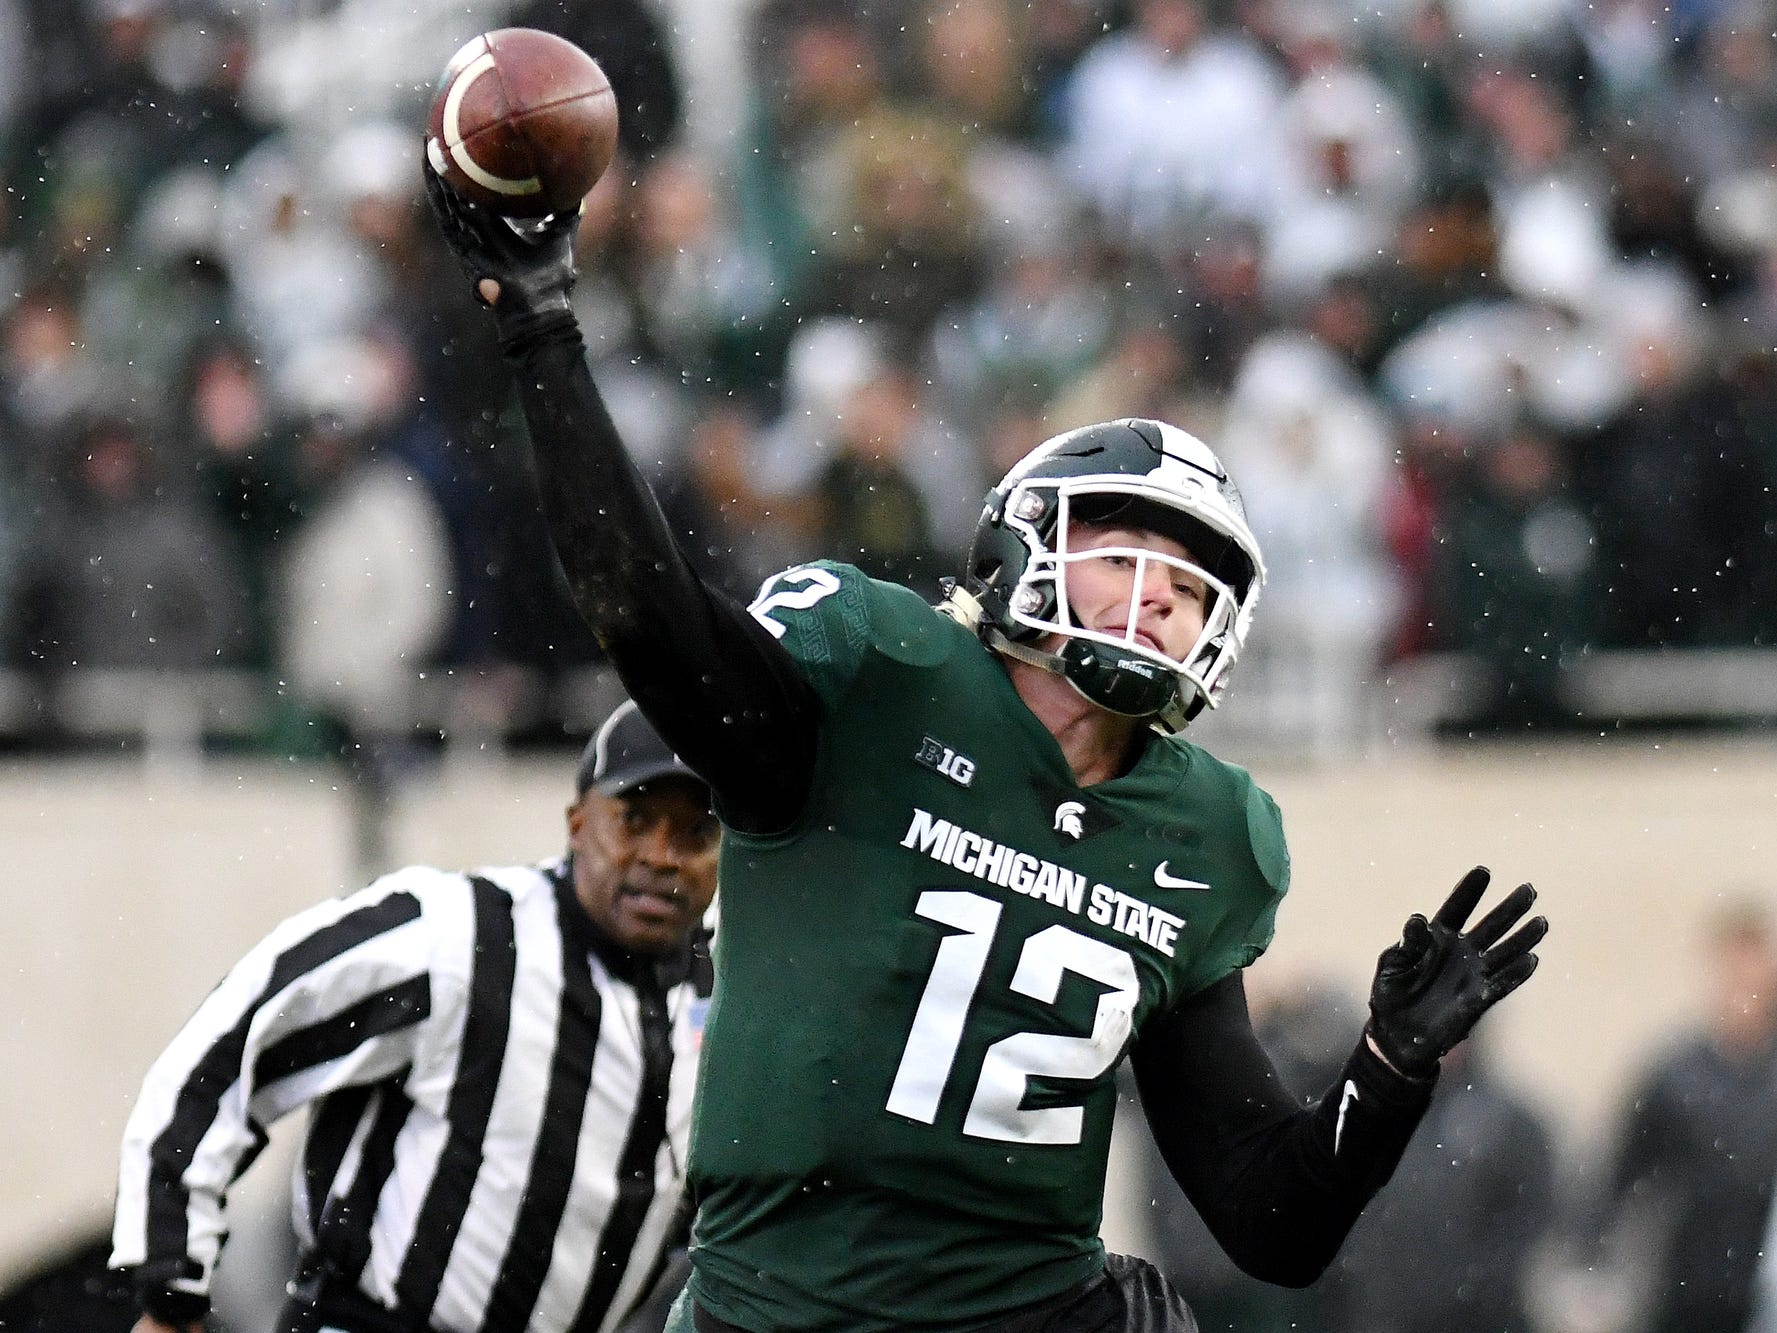 Michigan State's Rocky Lombardi throws a pass during the fourth quarter on Saturday, Oct. 20, 2018, in East Lansing.